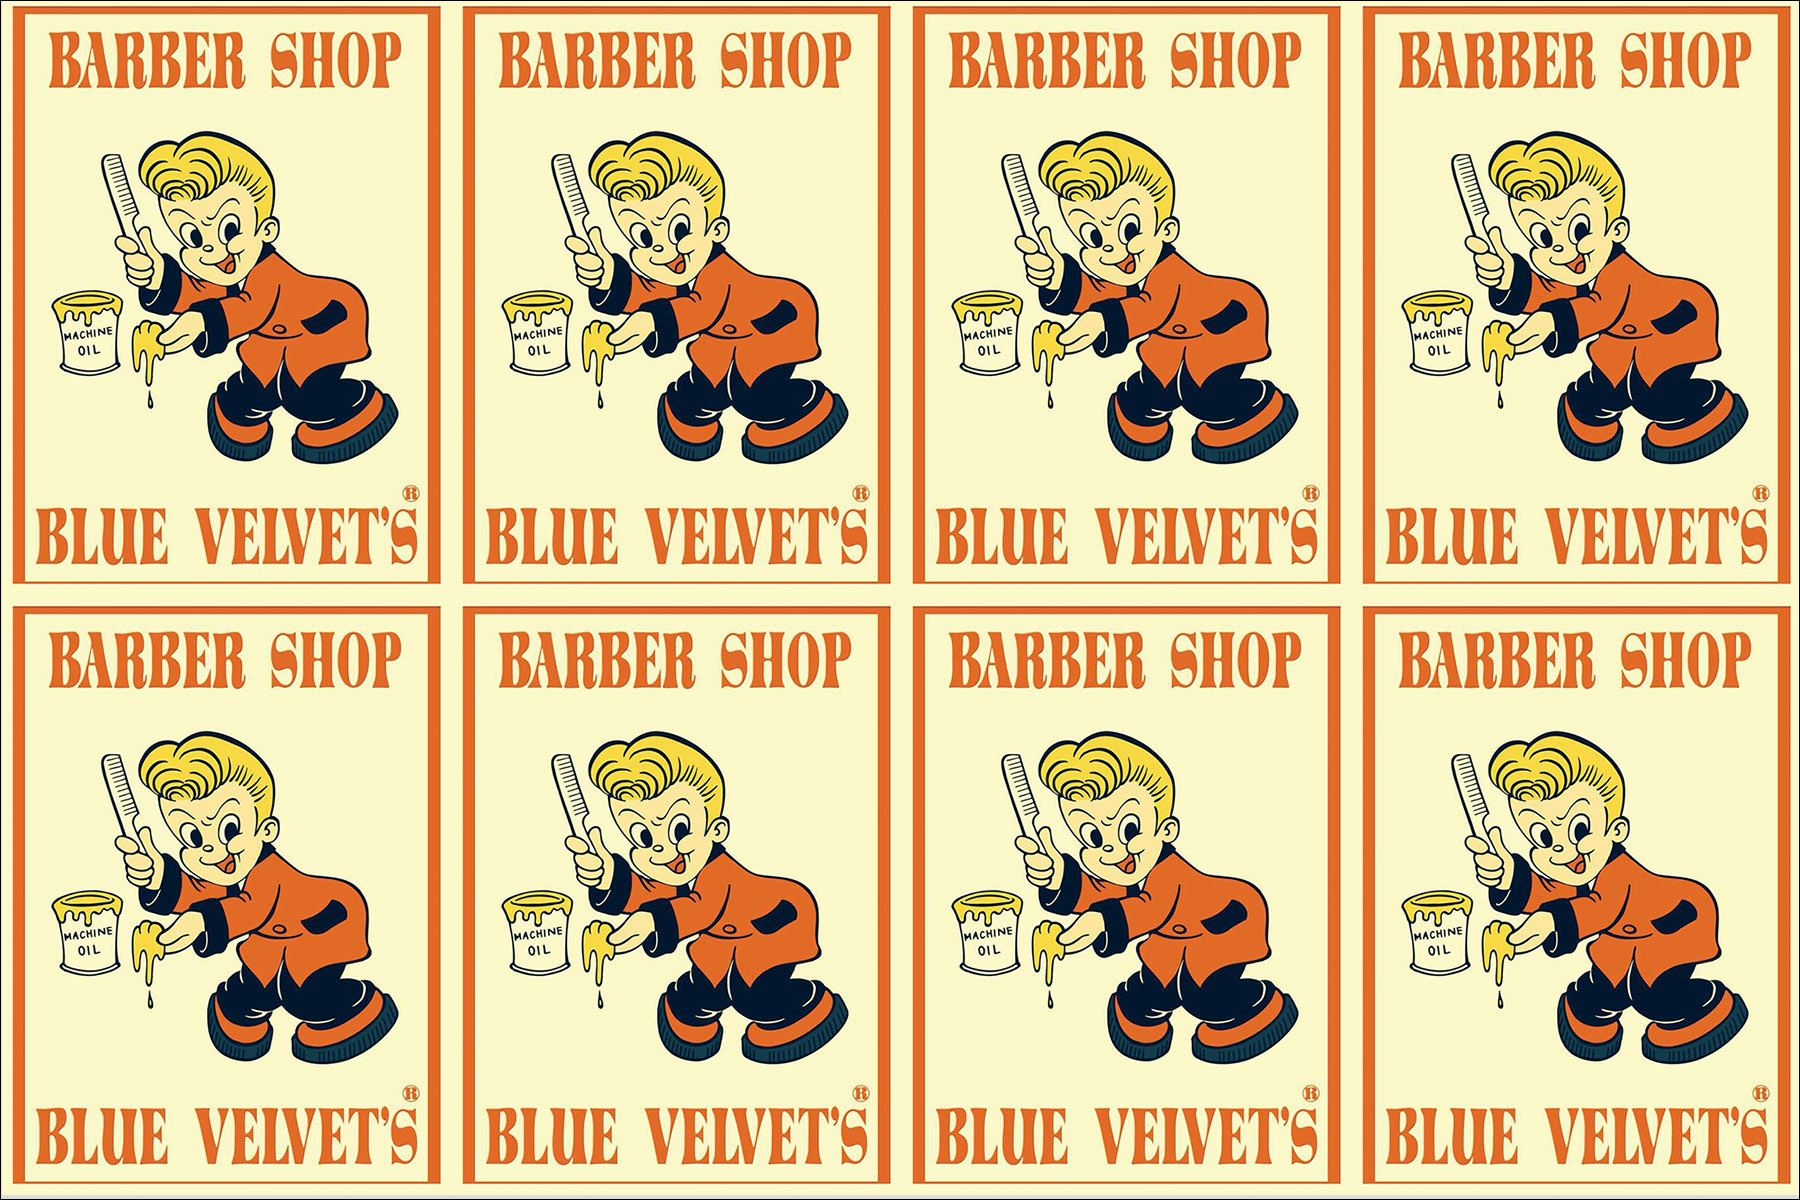 Blue Velvet's 1950s style barber shop visuals. Ponyboy magazine New York.